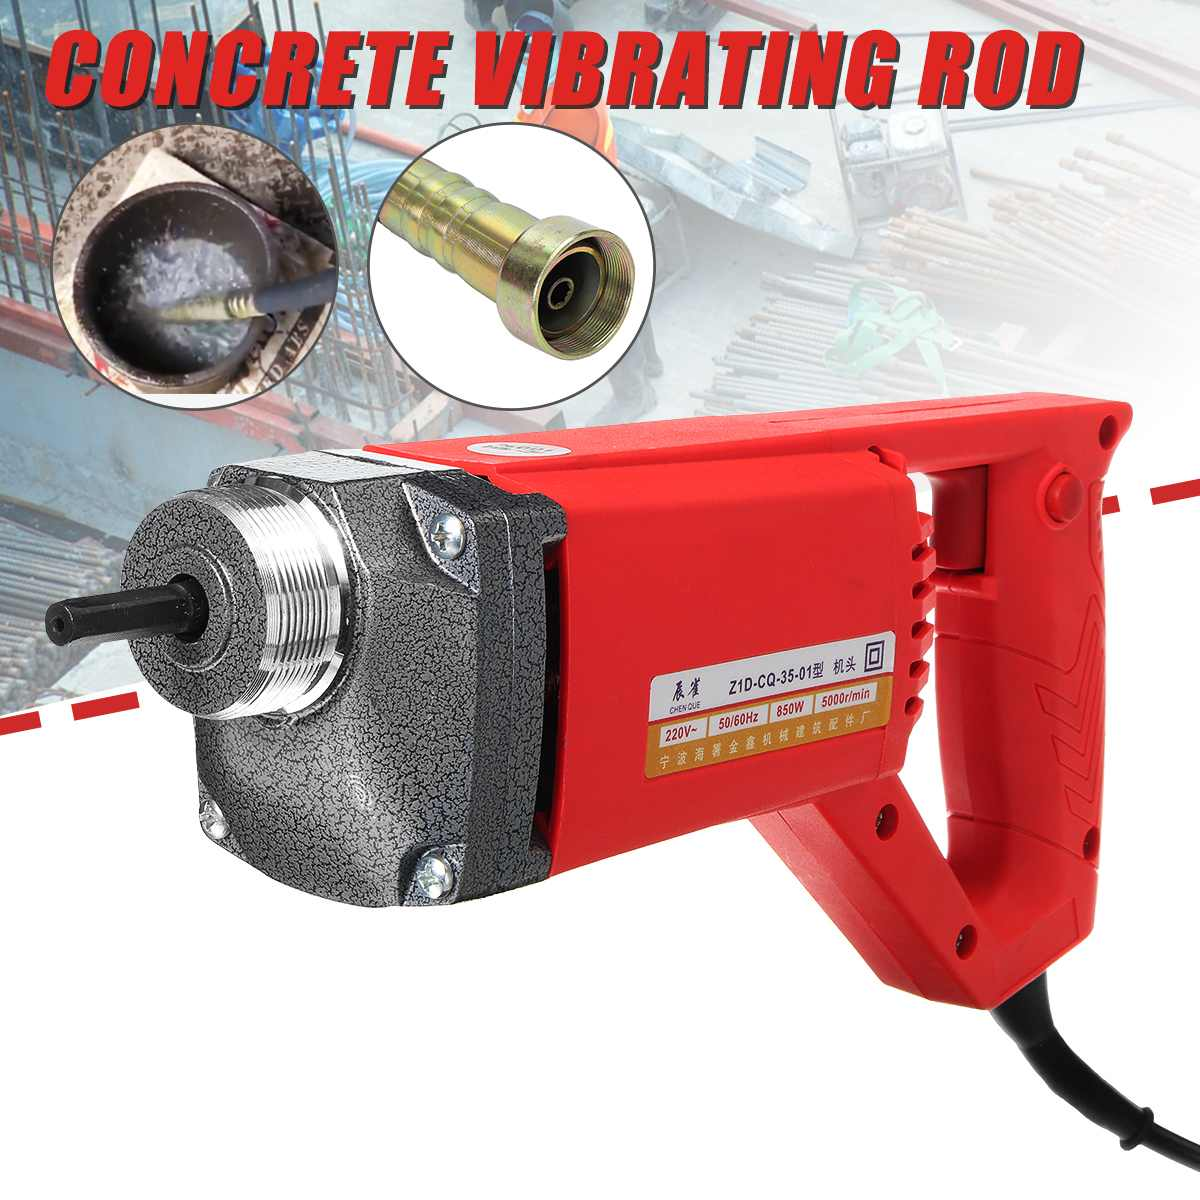 Electrical Concrete Vibrator With Motor Construction Tools 1560W/1200W/800W Power Tool Set